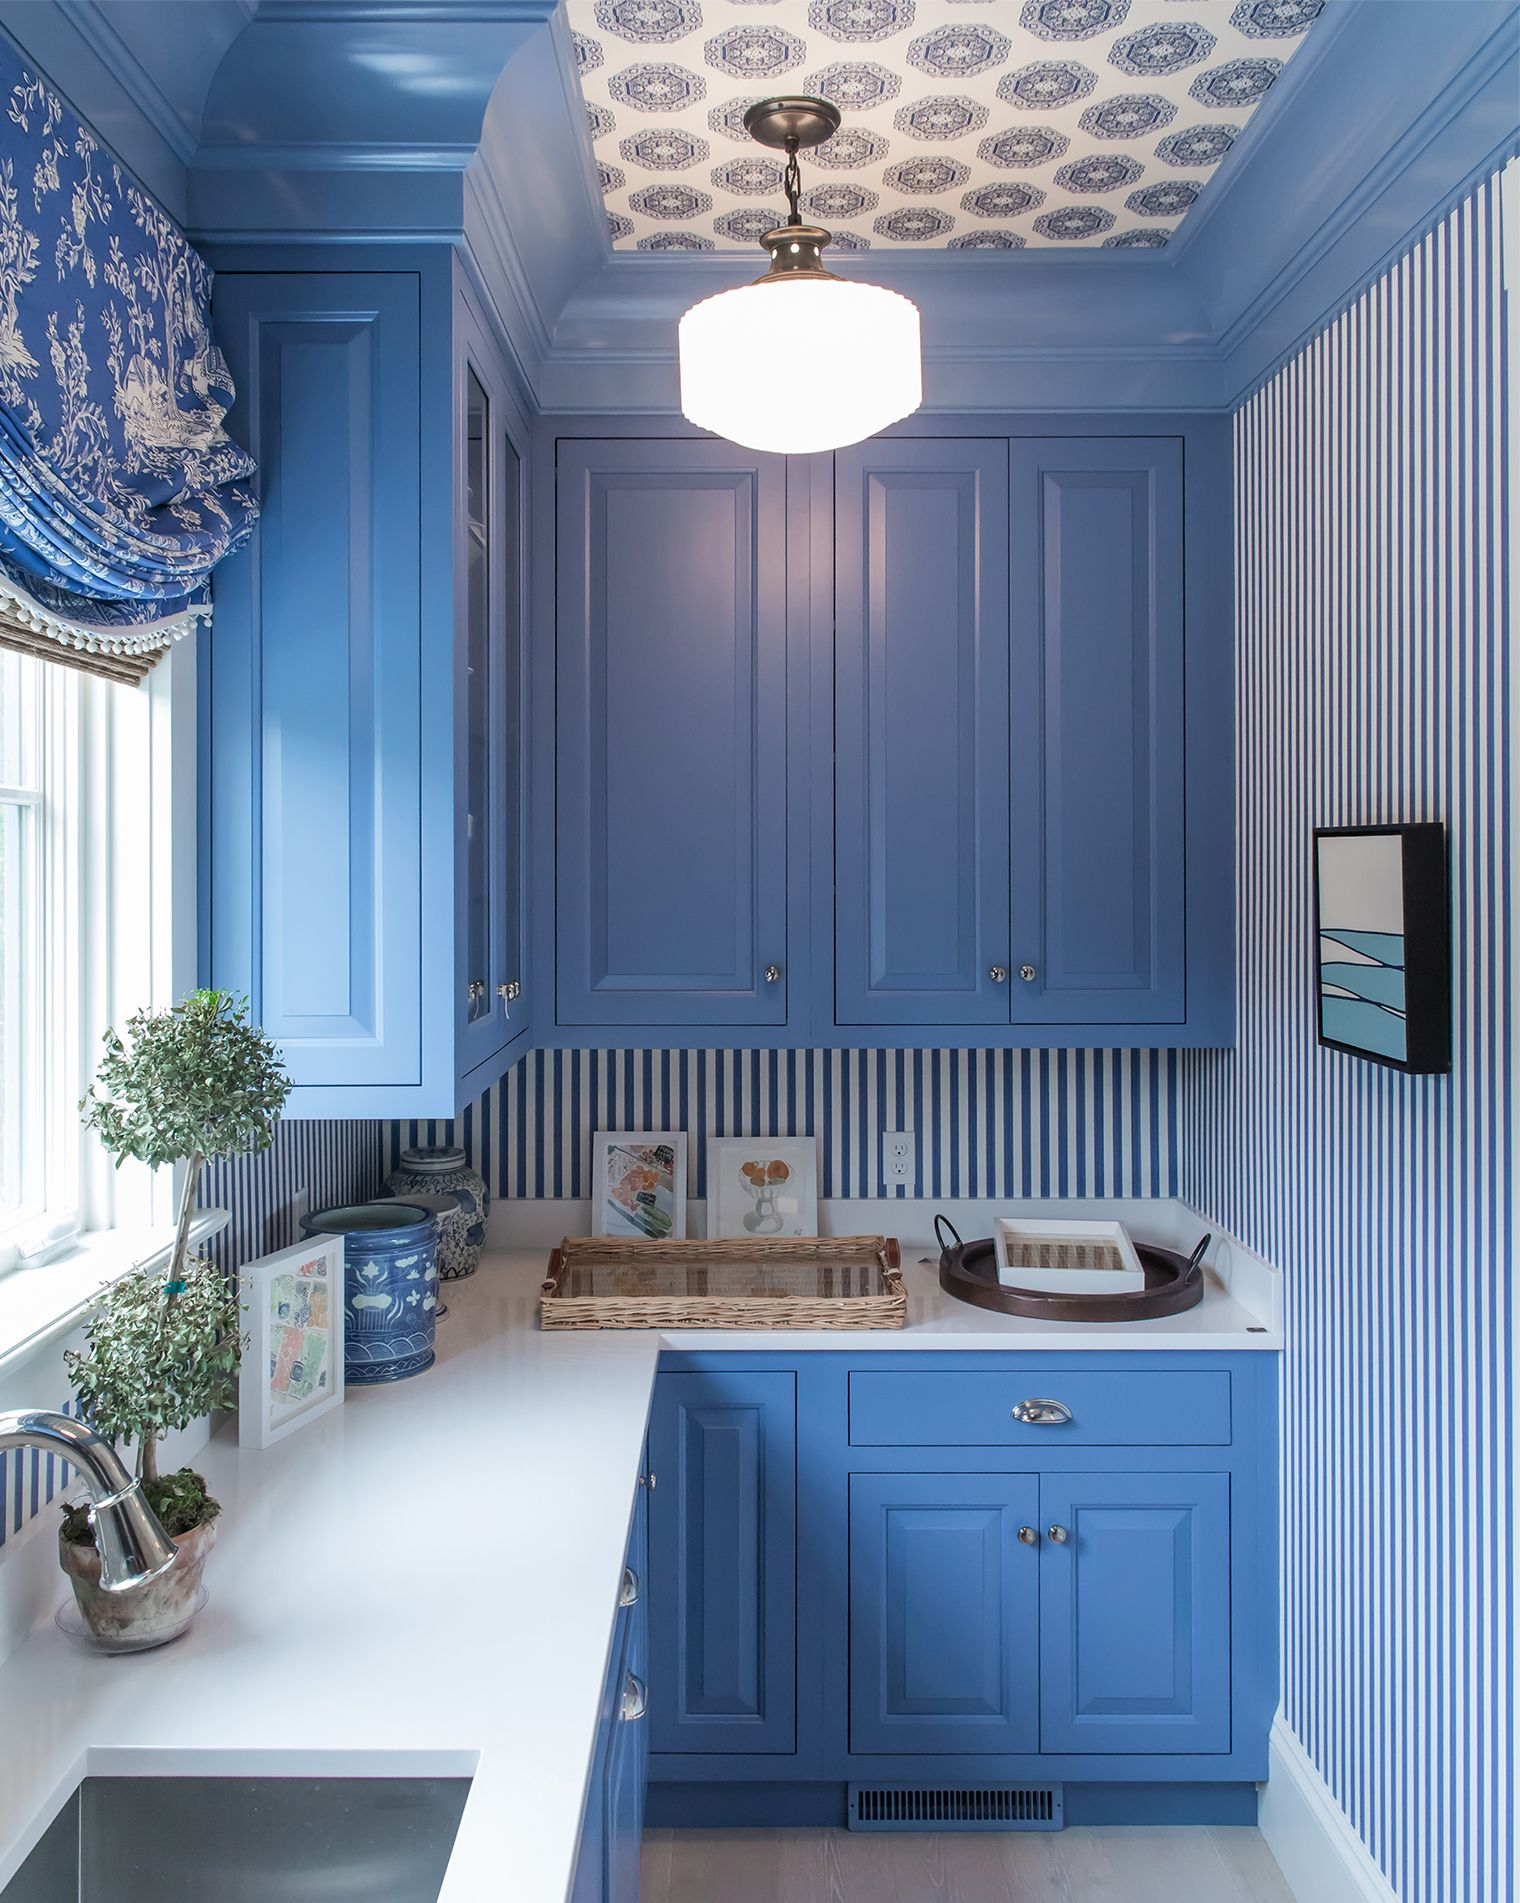 15 inspirational ideas for decorating with blue and white blue kitchen cabinets home decor on kitchen decor blue id=88099